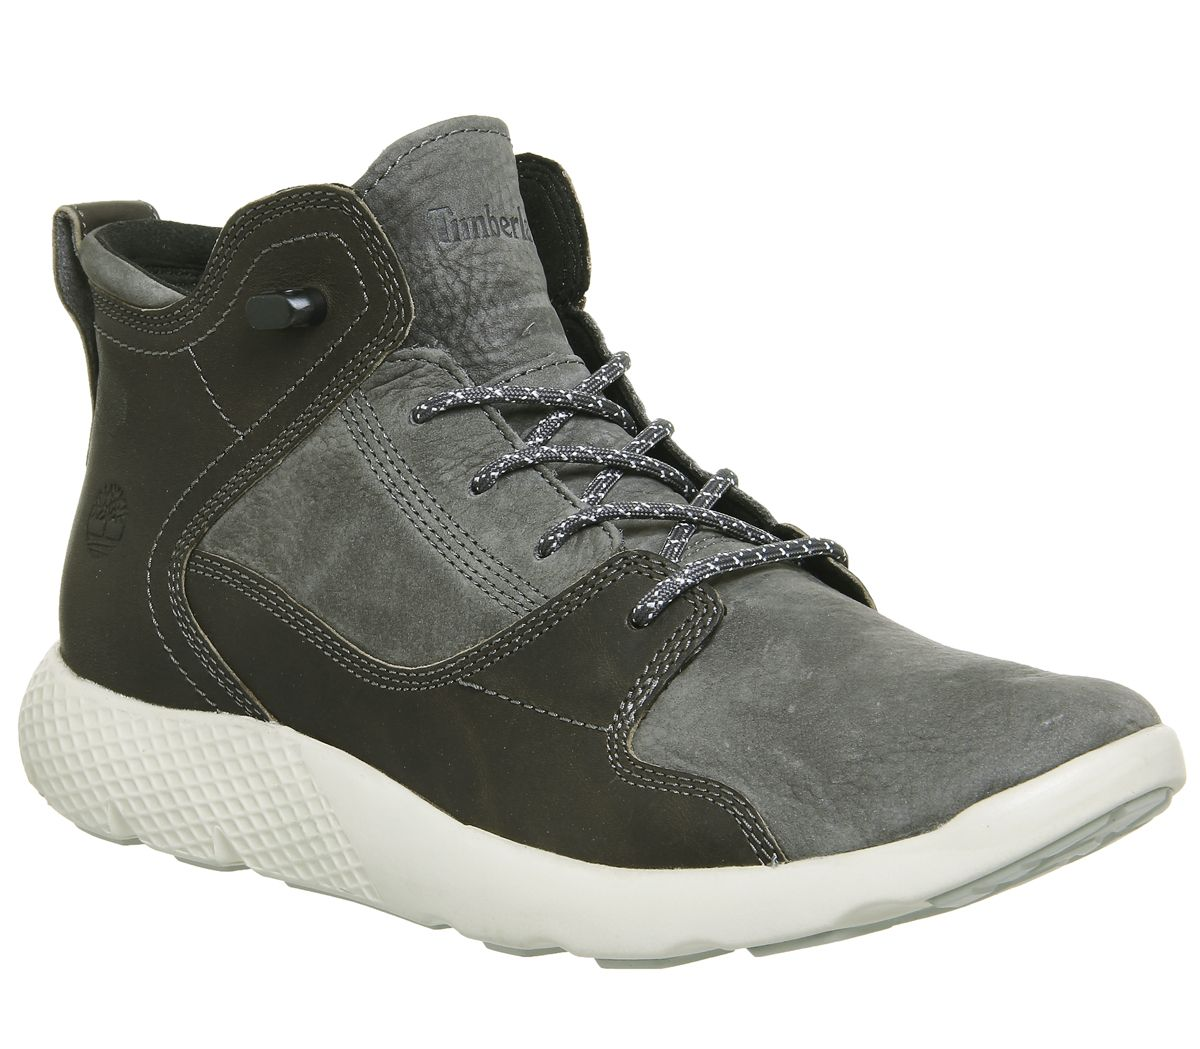 c82f718c863 Timberland Flyroam Leather Hiker Boots Grey - Casual